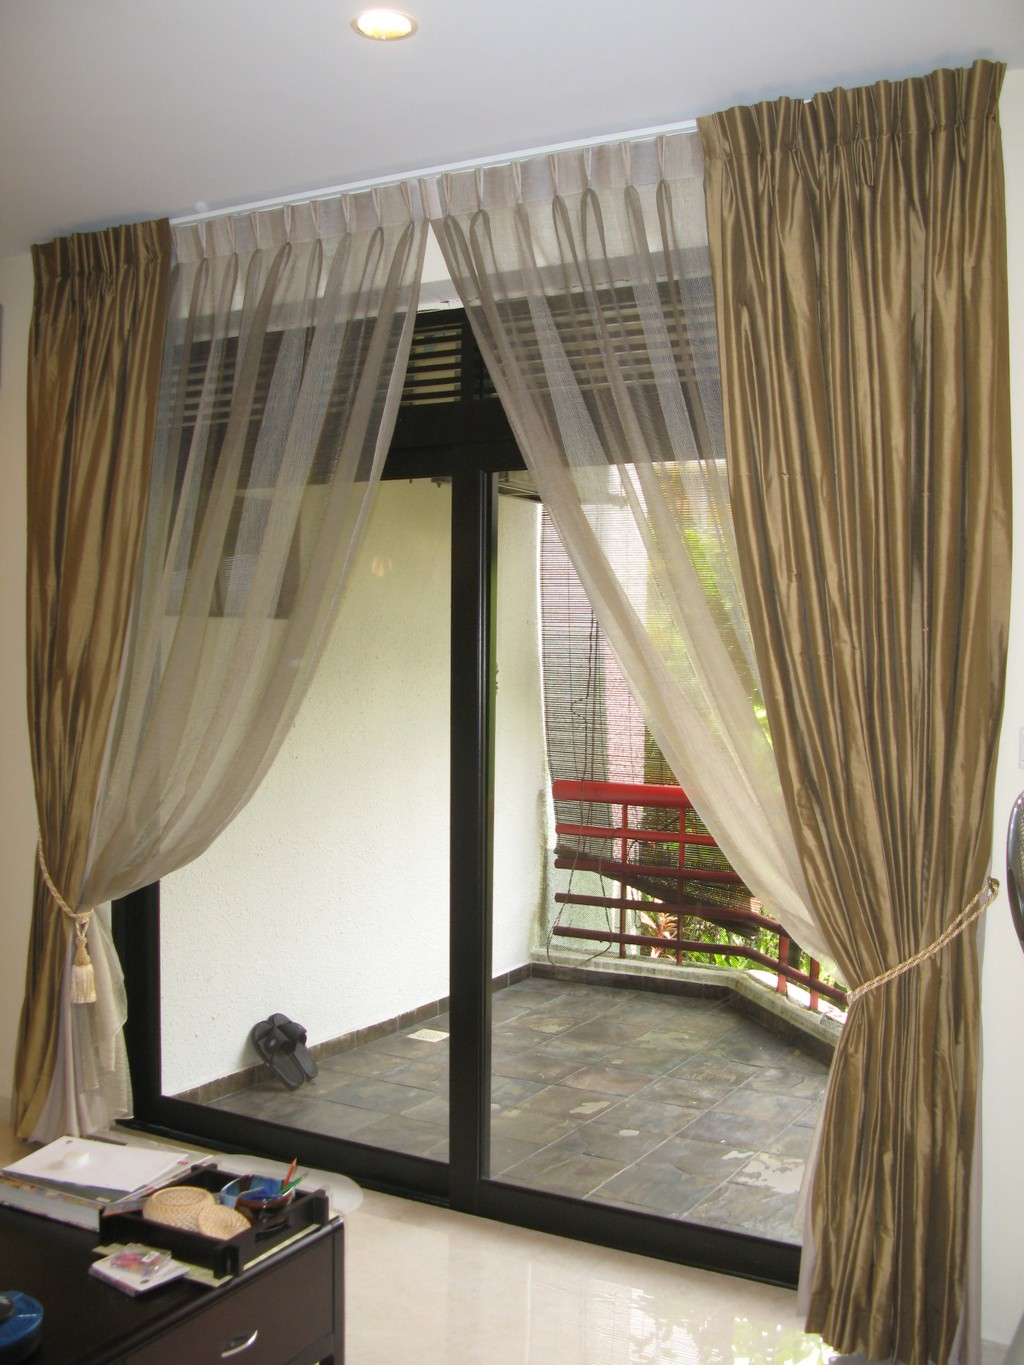 black out curtains, bathroom shower curtains, chili curtains, grey window curtains and scarves